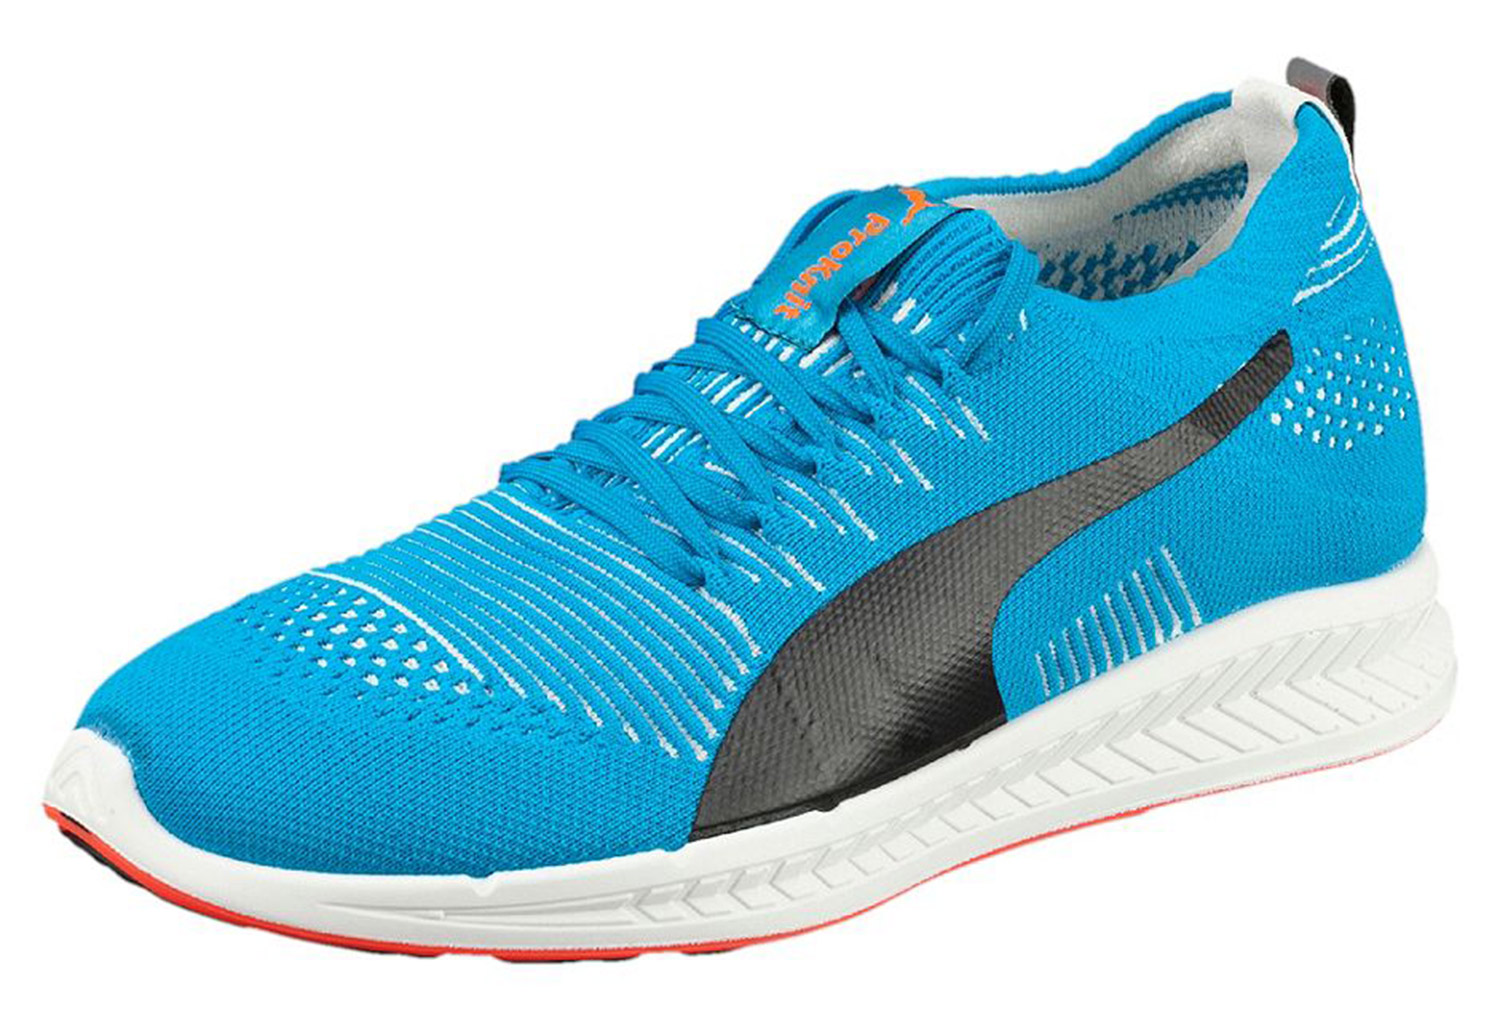 9490c589297 PUMA Pair of Shoes IGNITE PROKNIT Blue White Red